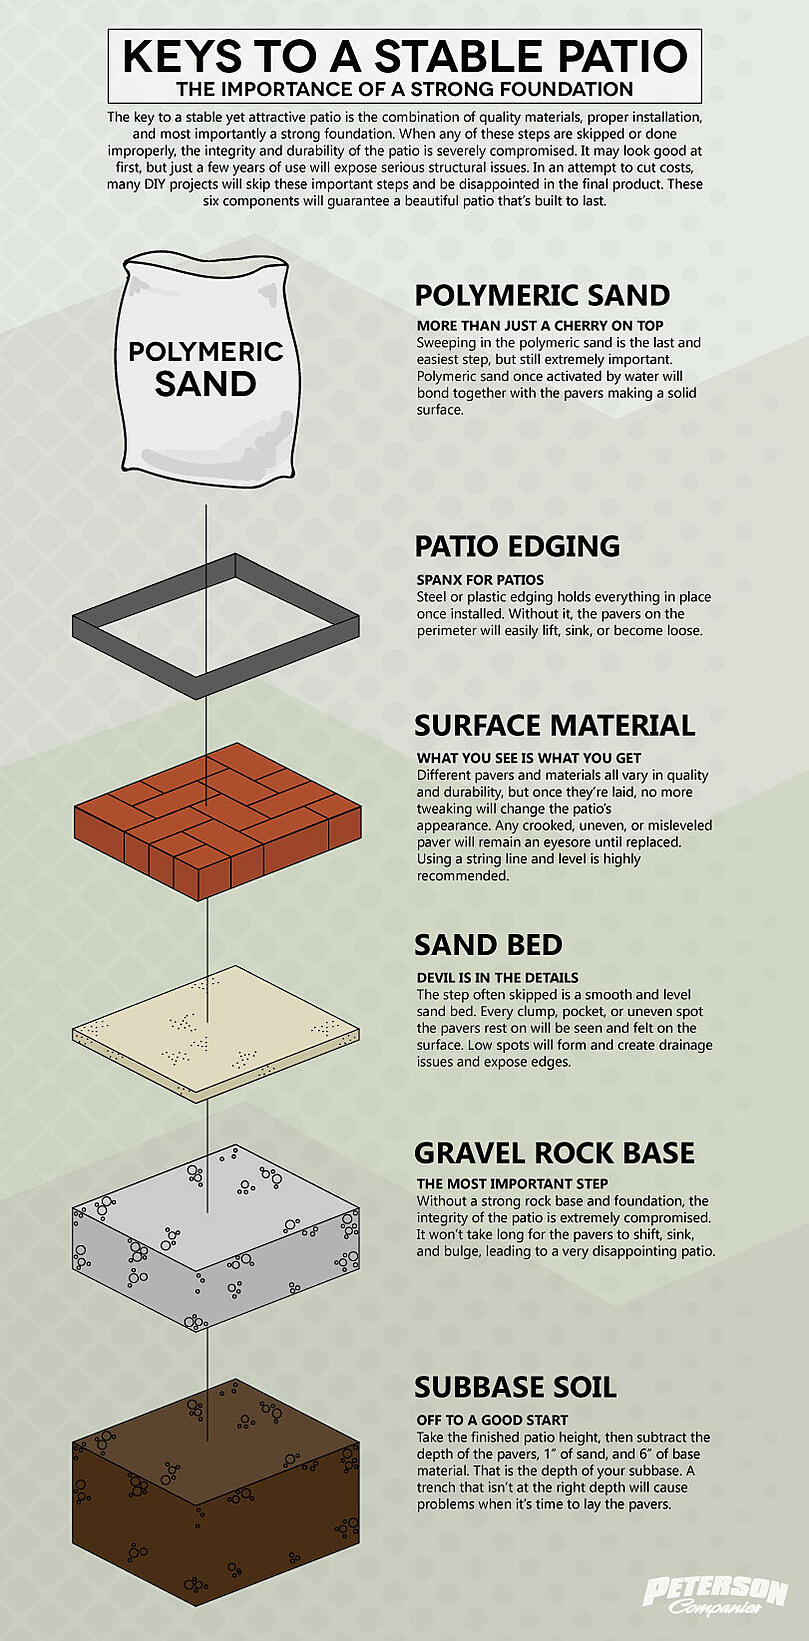 Keys To A Stable Patio Infographic